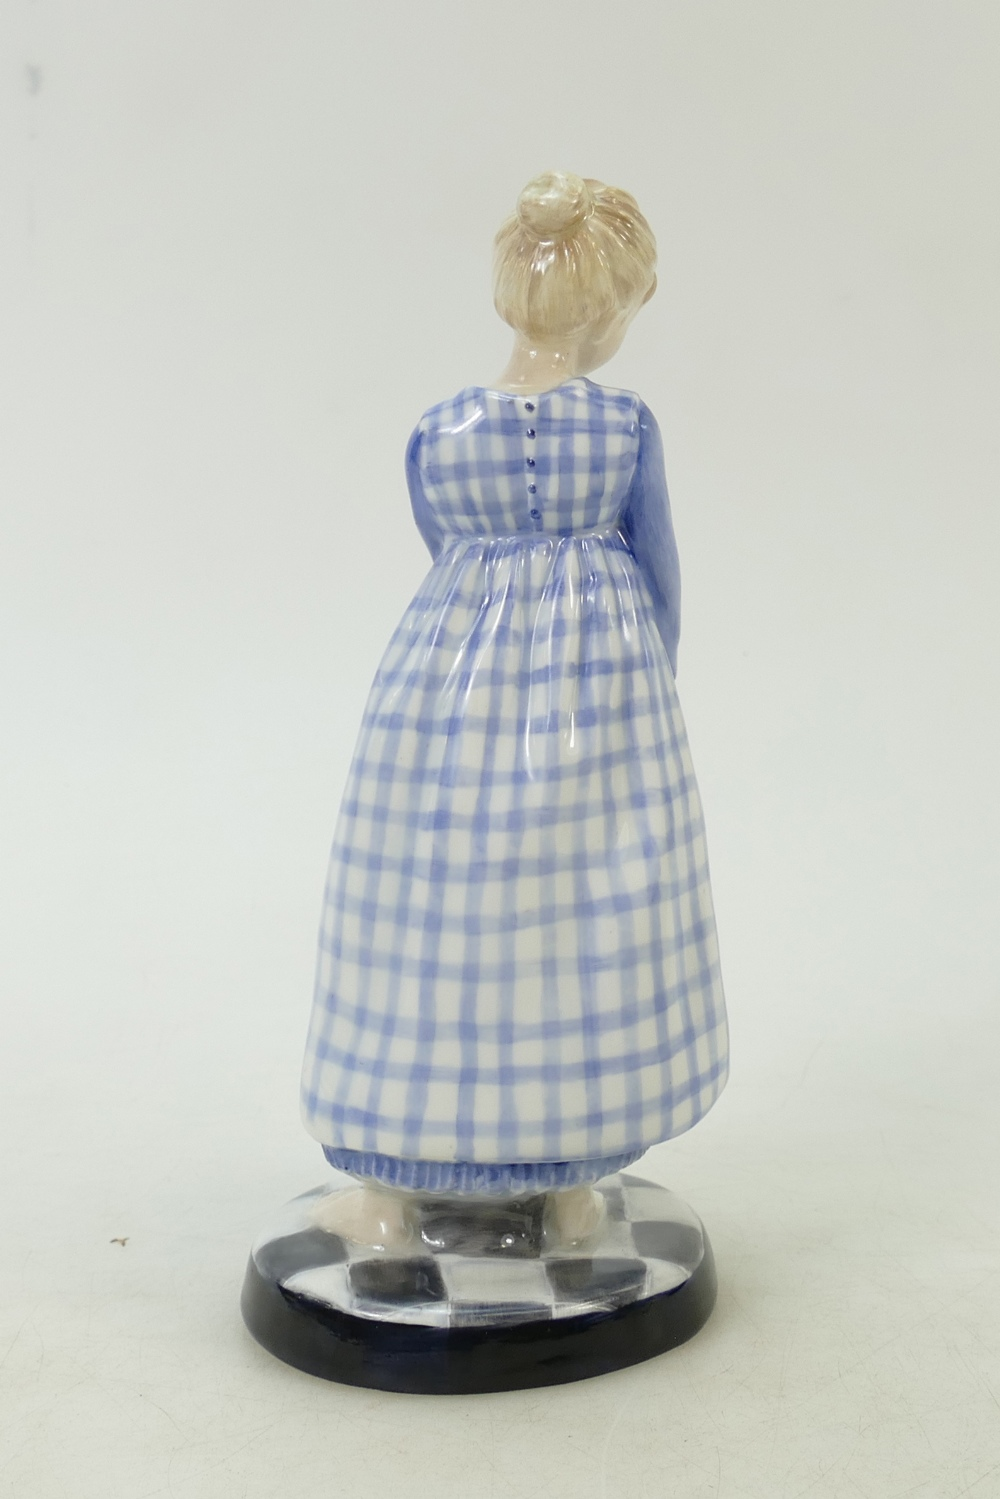 Lot 24 - Royal Doulton prototype colourway figure: Royal Doulton prototype figure Polly put the kettle on